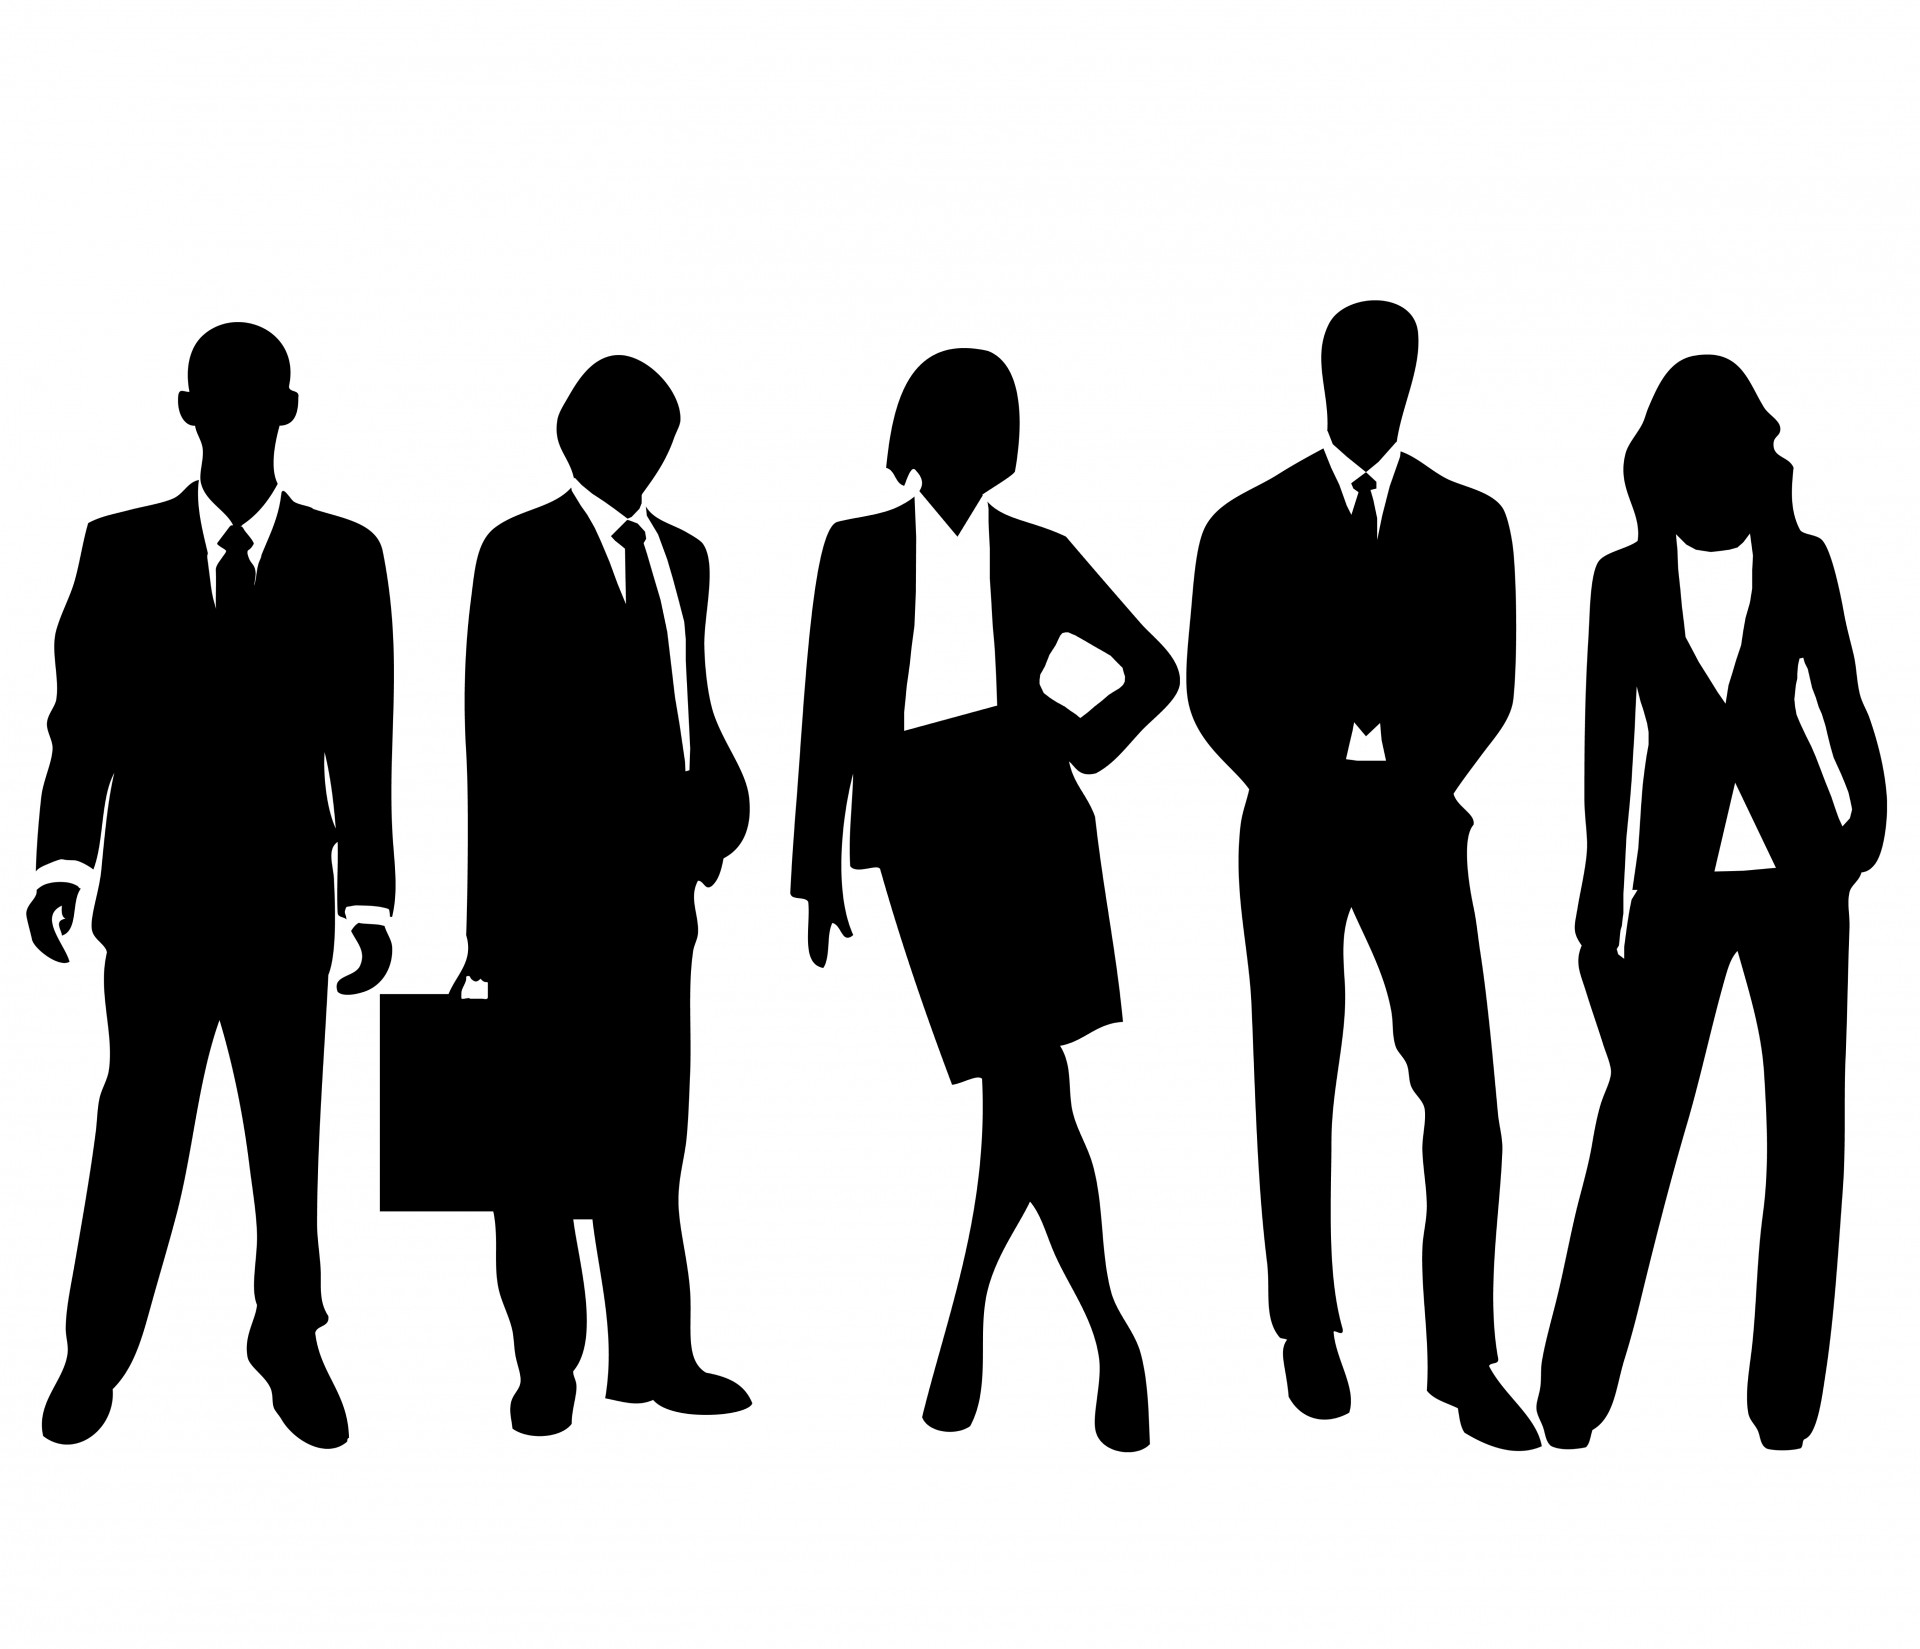 Business Person Silhouette Clipart